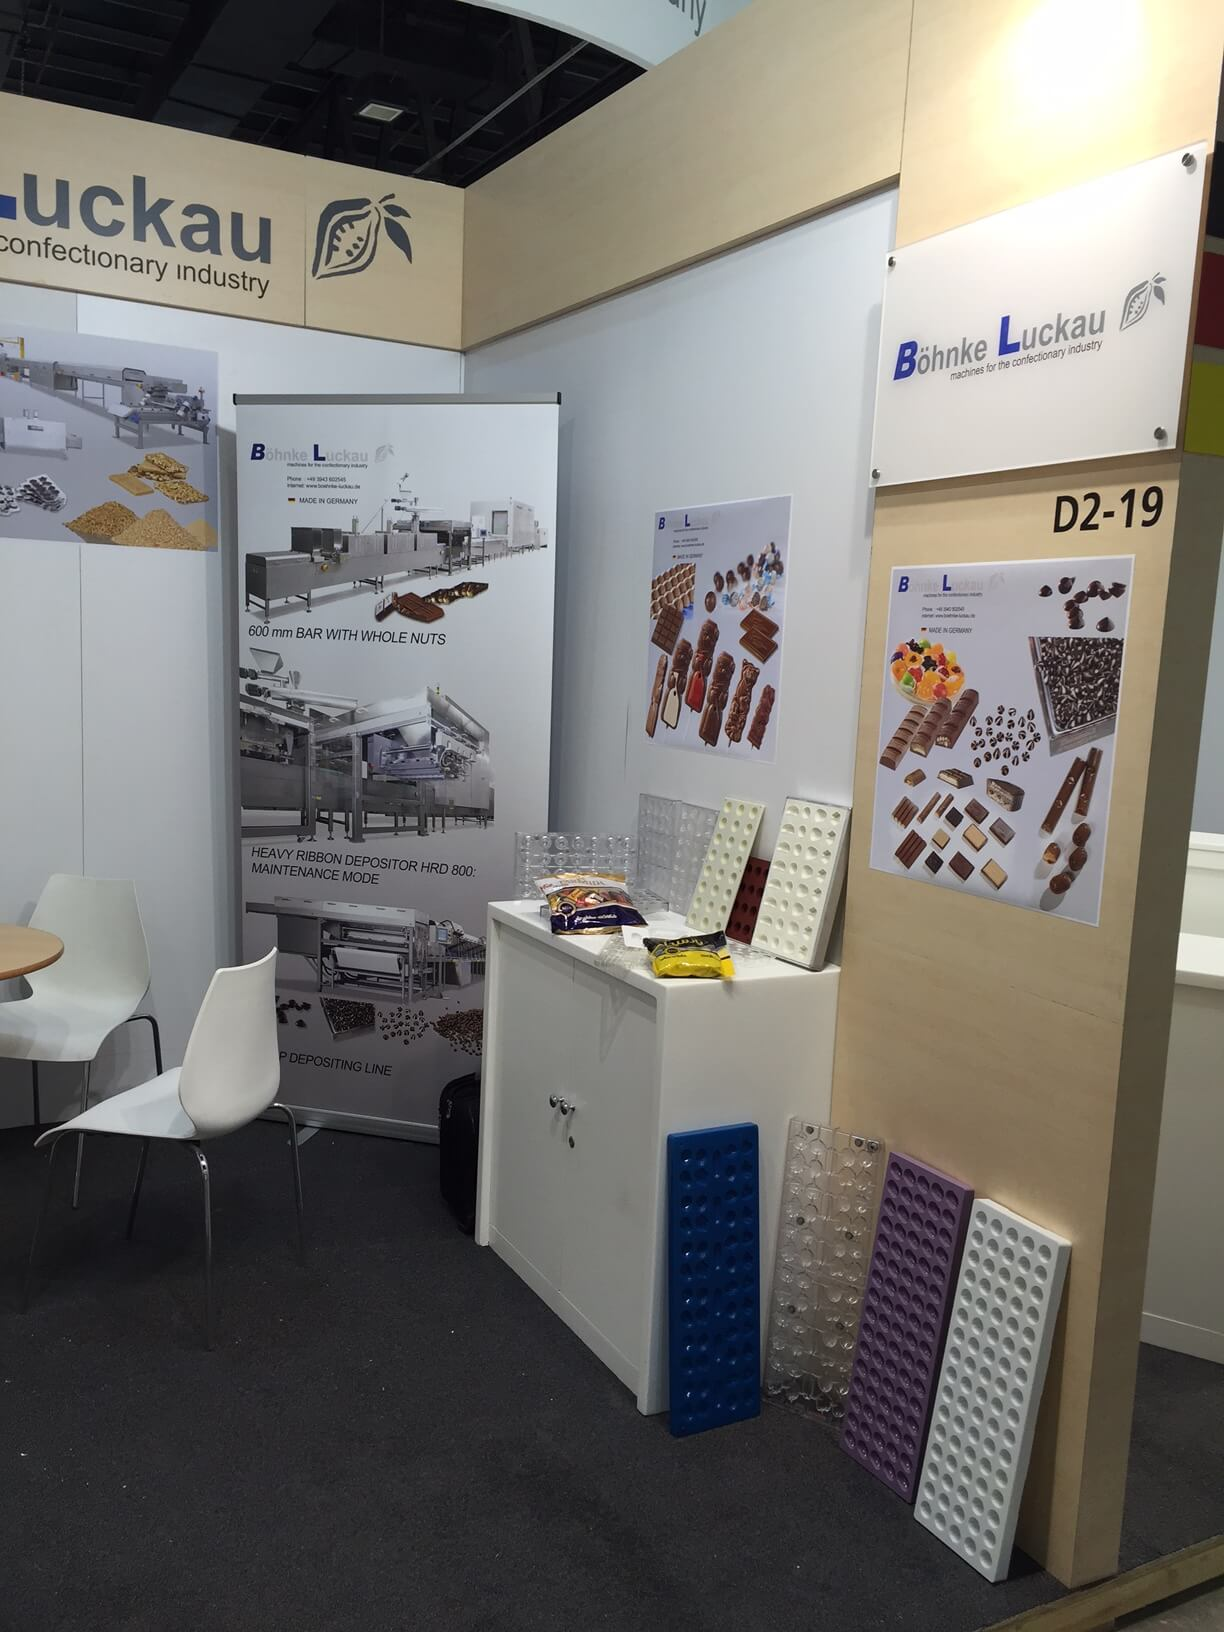 Böhnke & Luckau at the exhibition Dubai fair Gulfood Manufacturing 2016